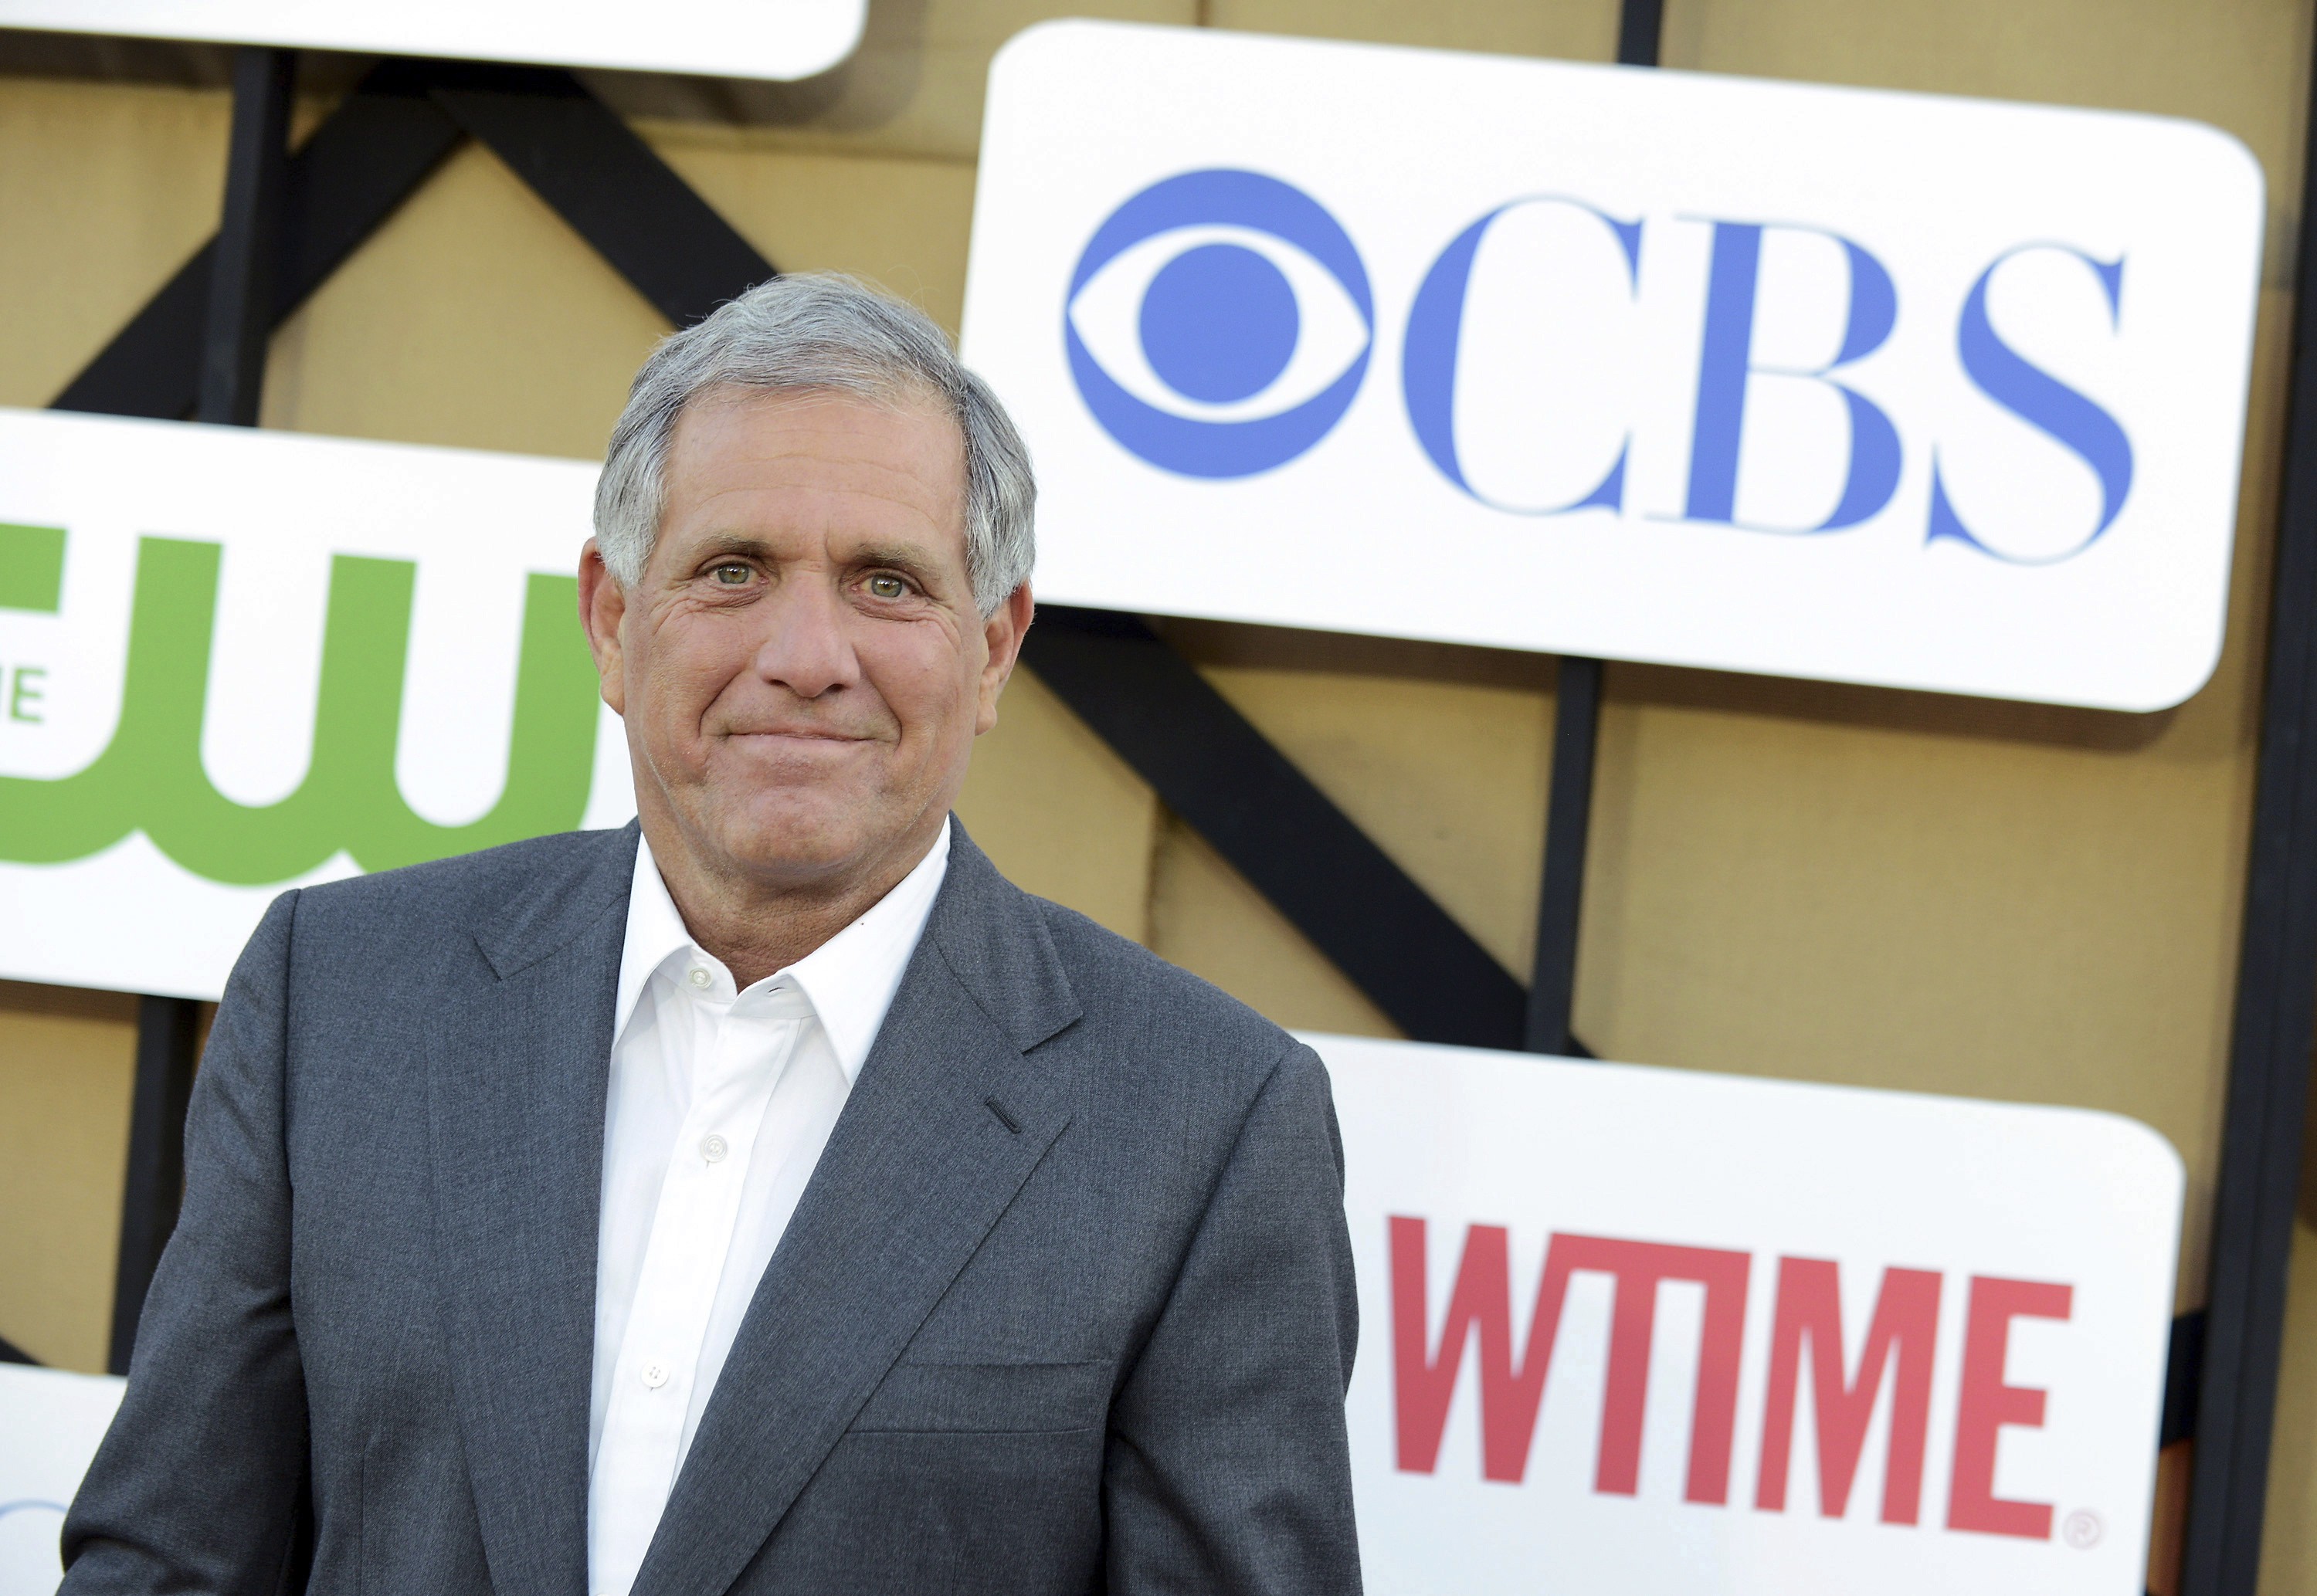 Moonves Lawyer: CBS Investigation was 'Foreordained' With 'Baseless Conclusions'